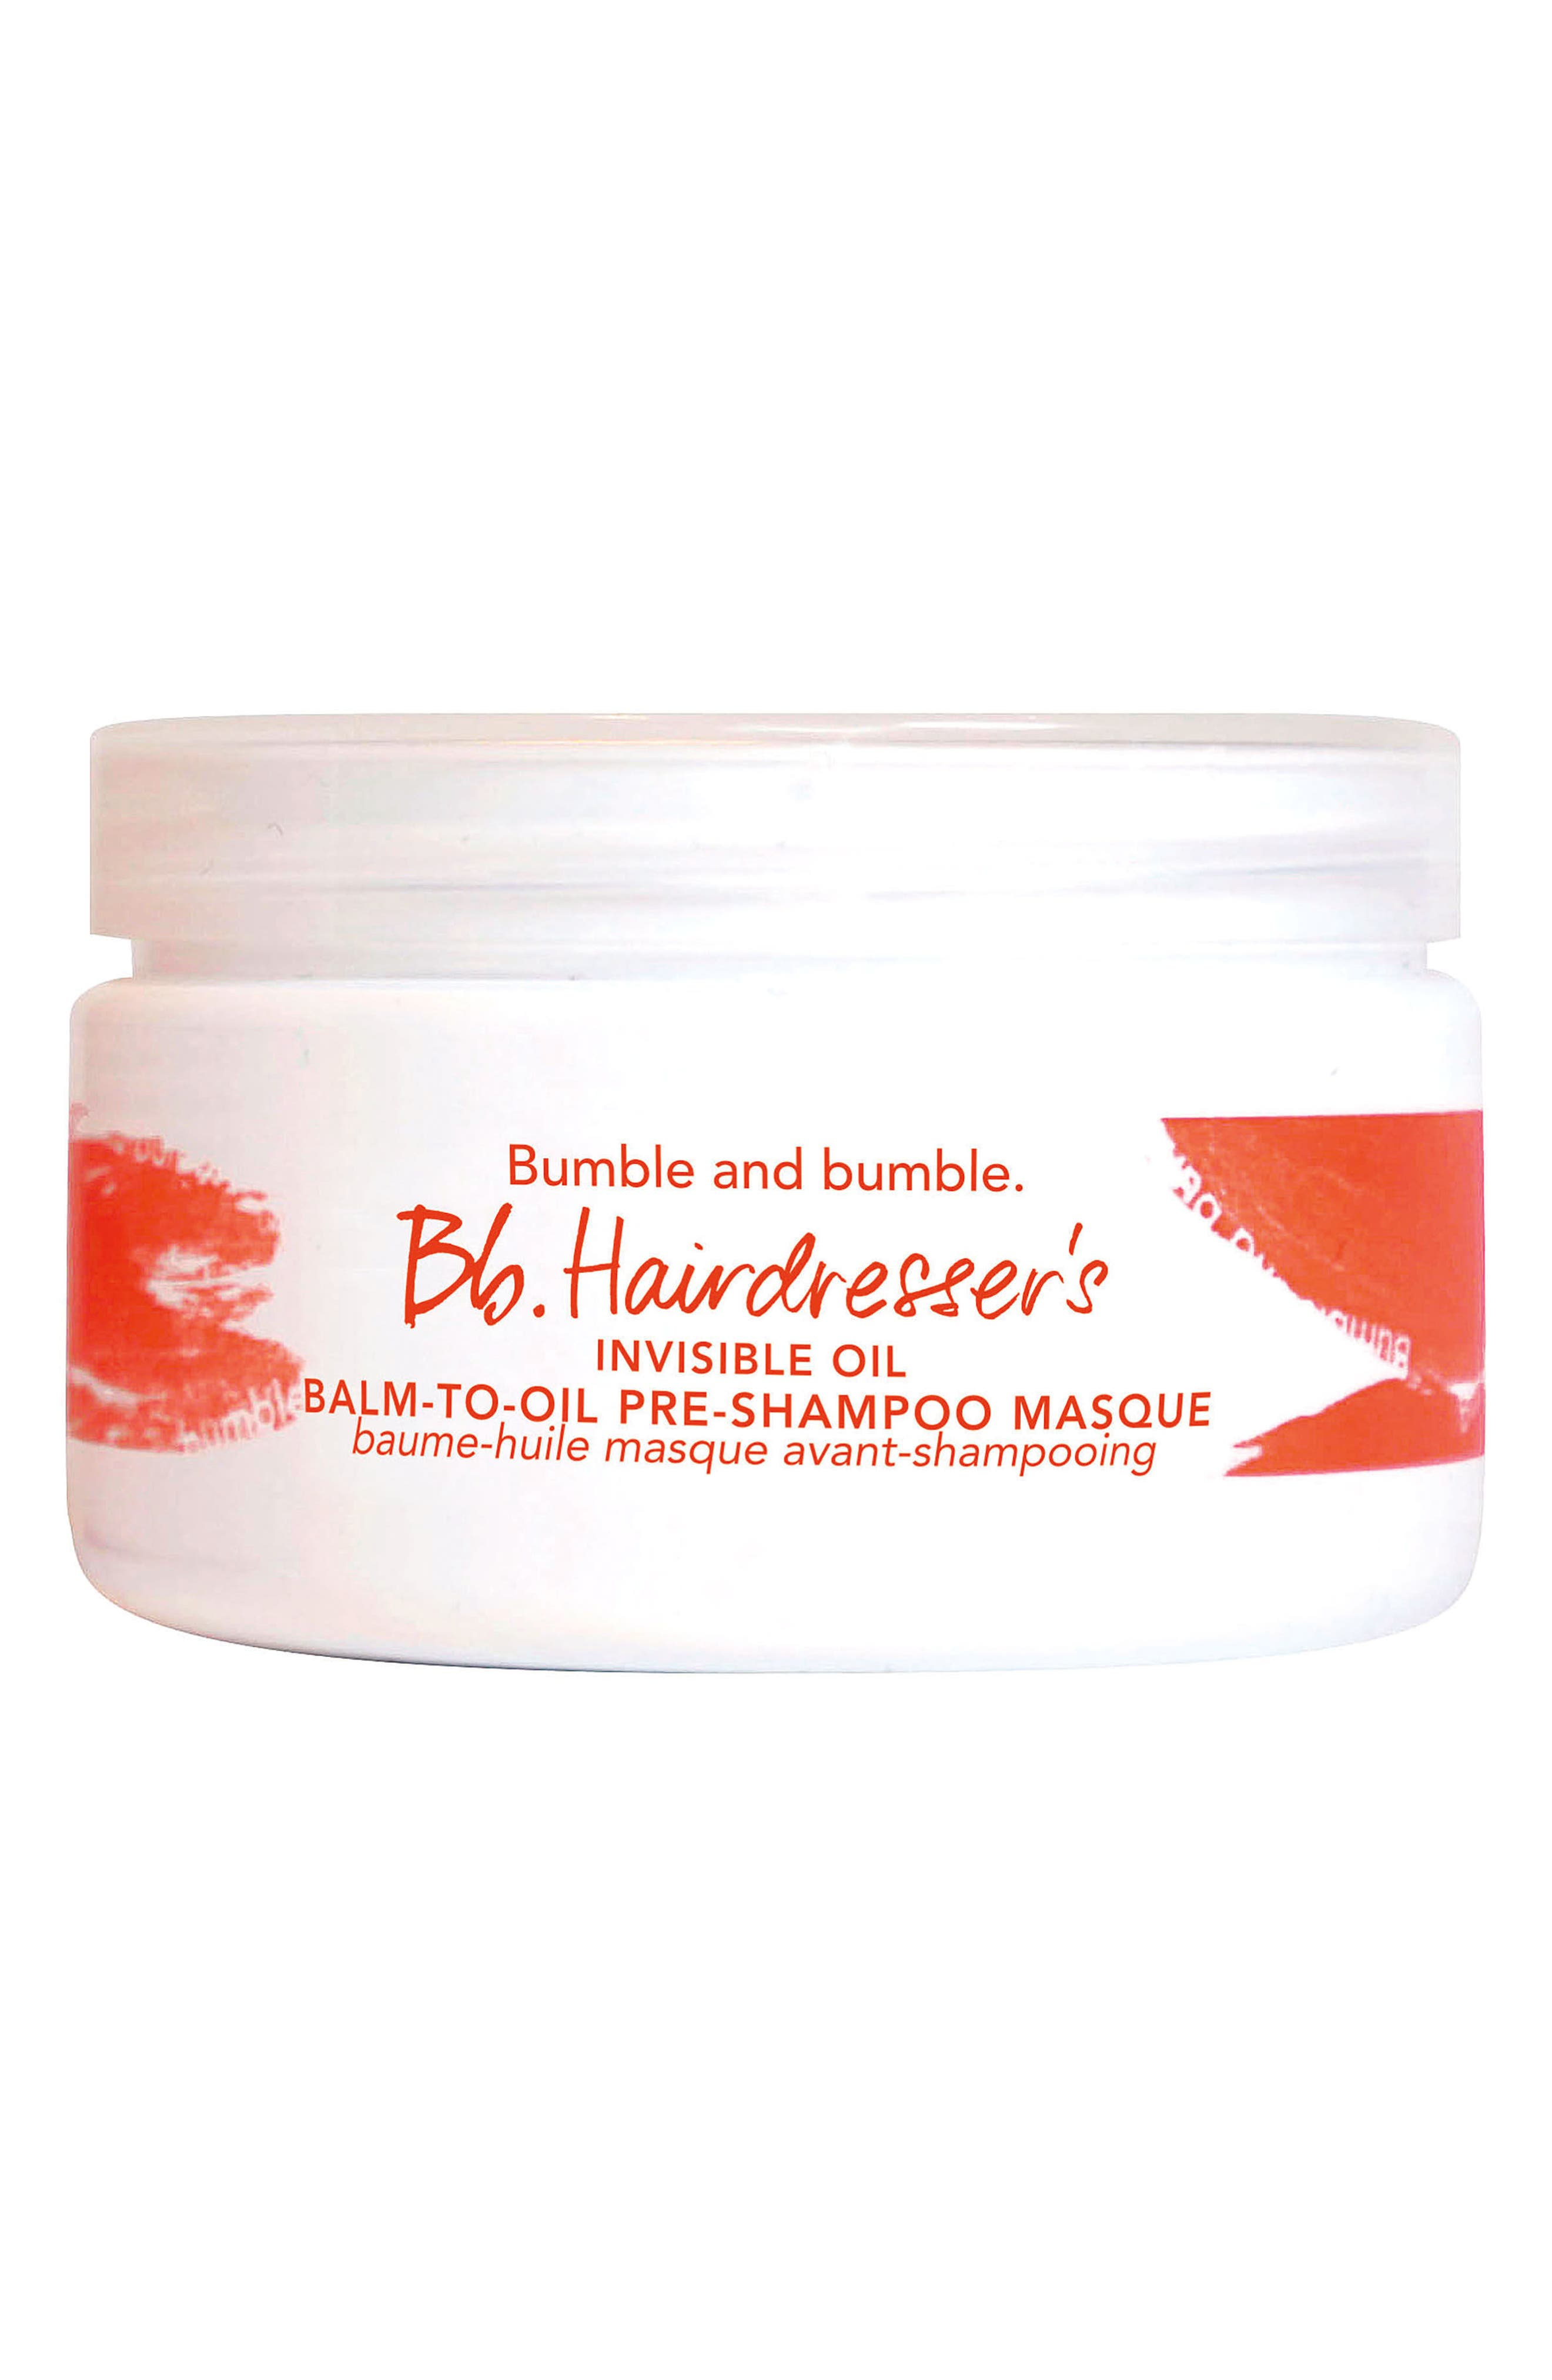 Main Image - Bumble and bumble Hairdresser's Invisible Oil Balm-to-Oil Pre-Shampoo Masque